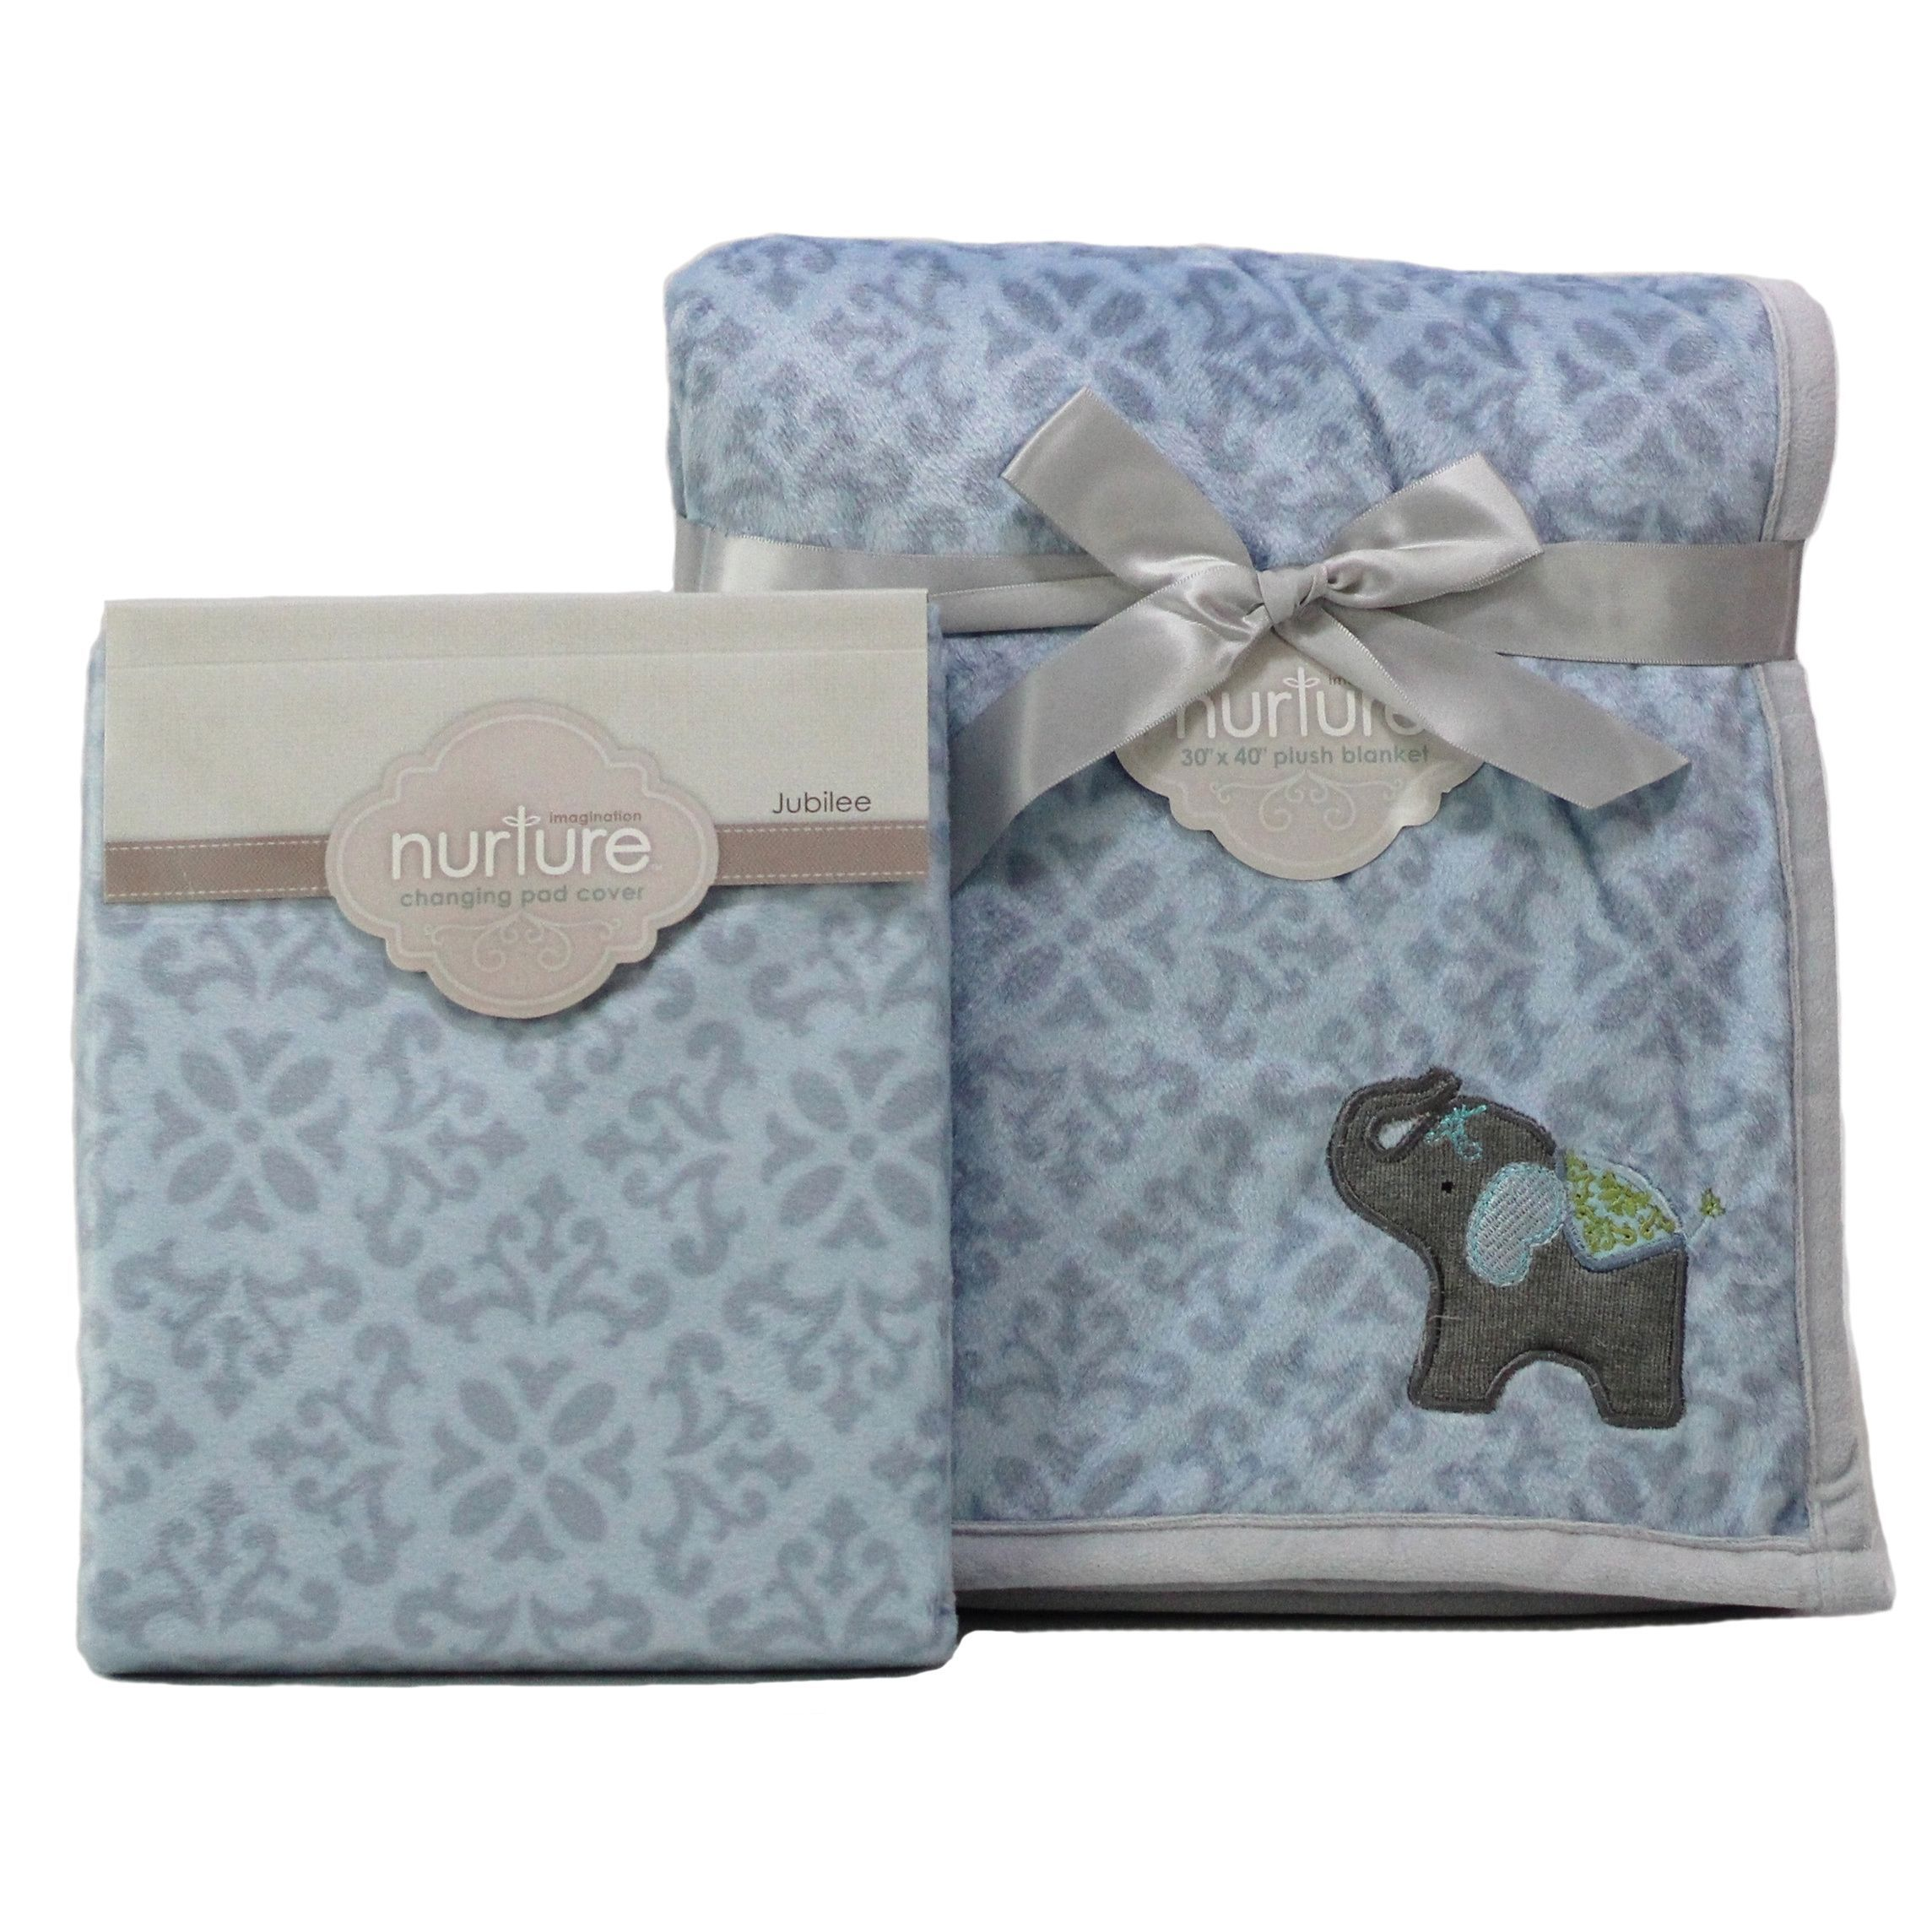 Nurture Elephant Jubilee Nursery Plush Blanket and Changing Pad Cover Set